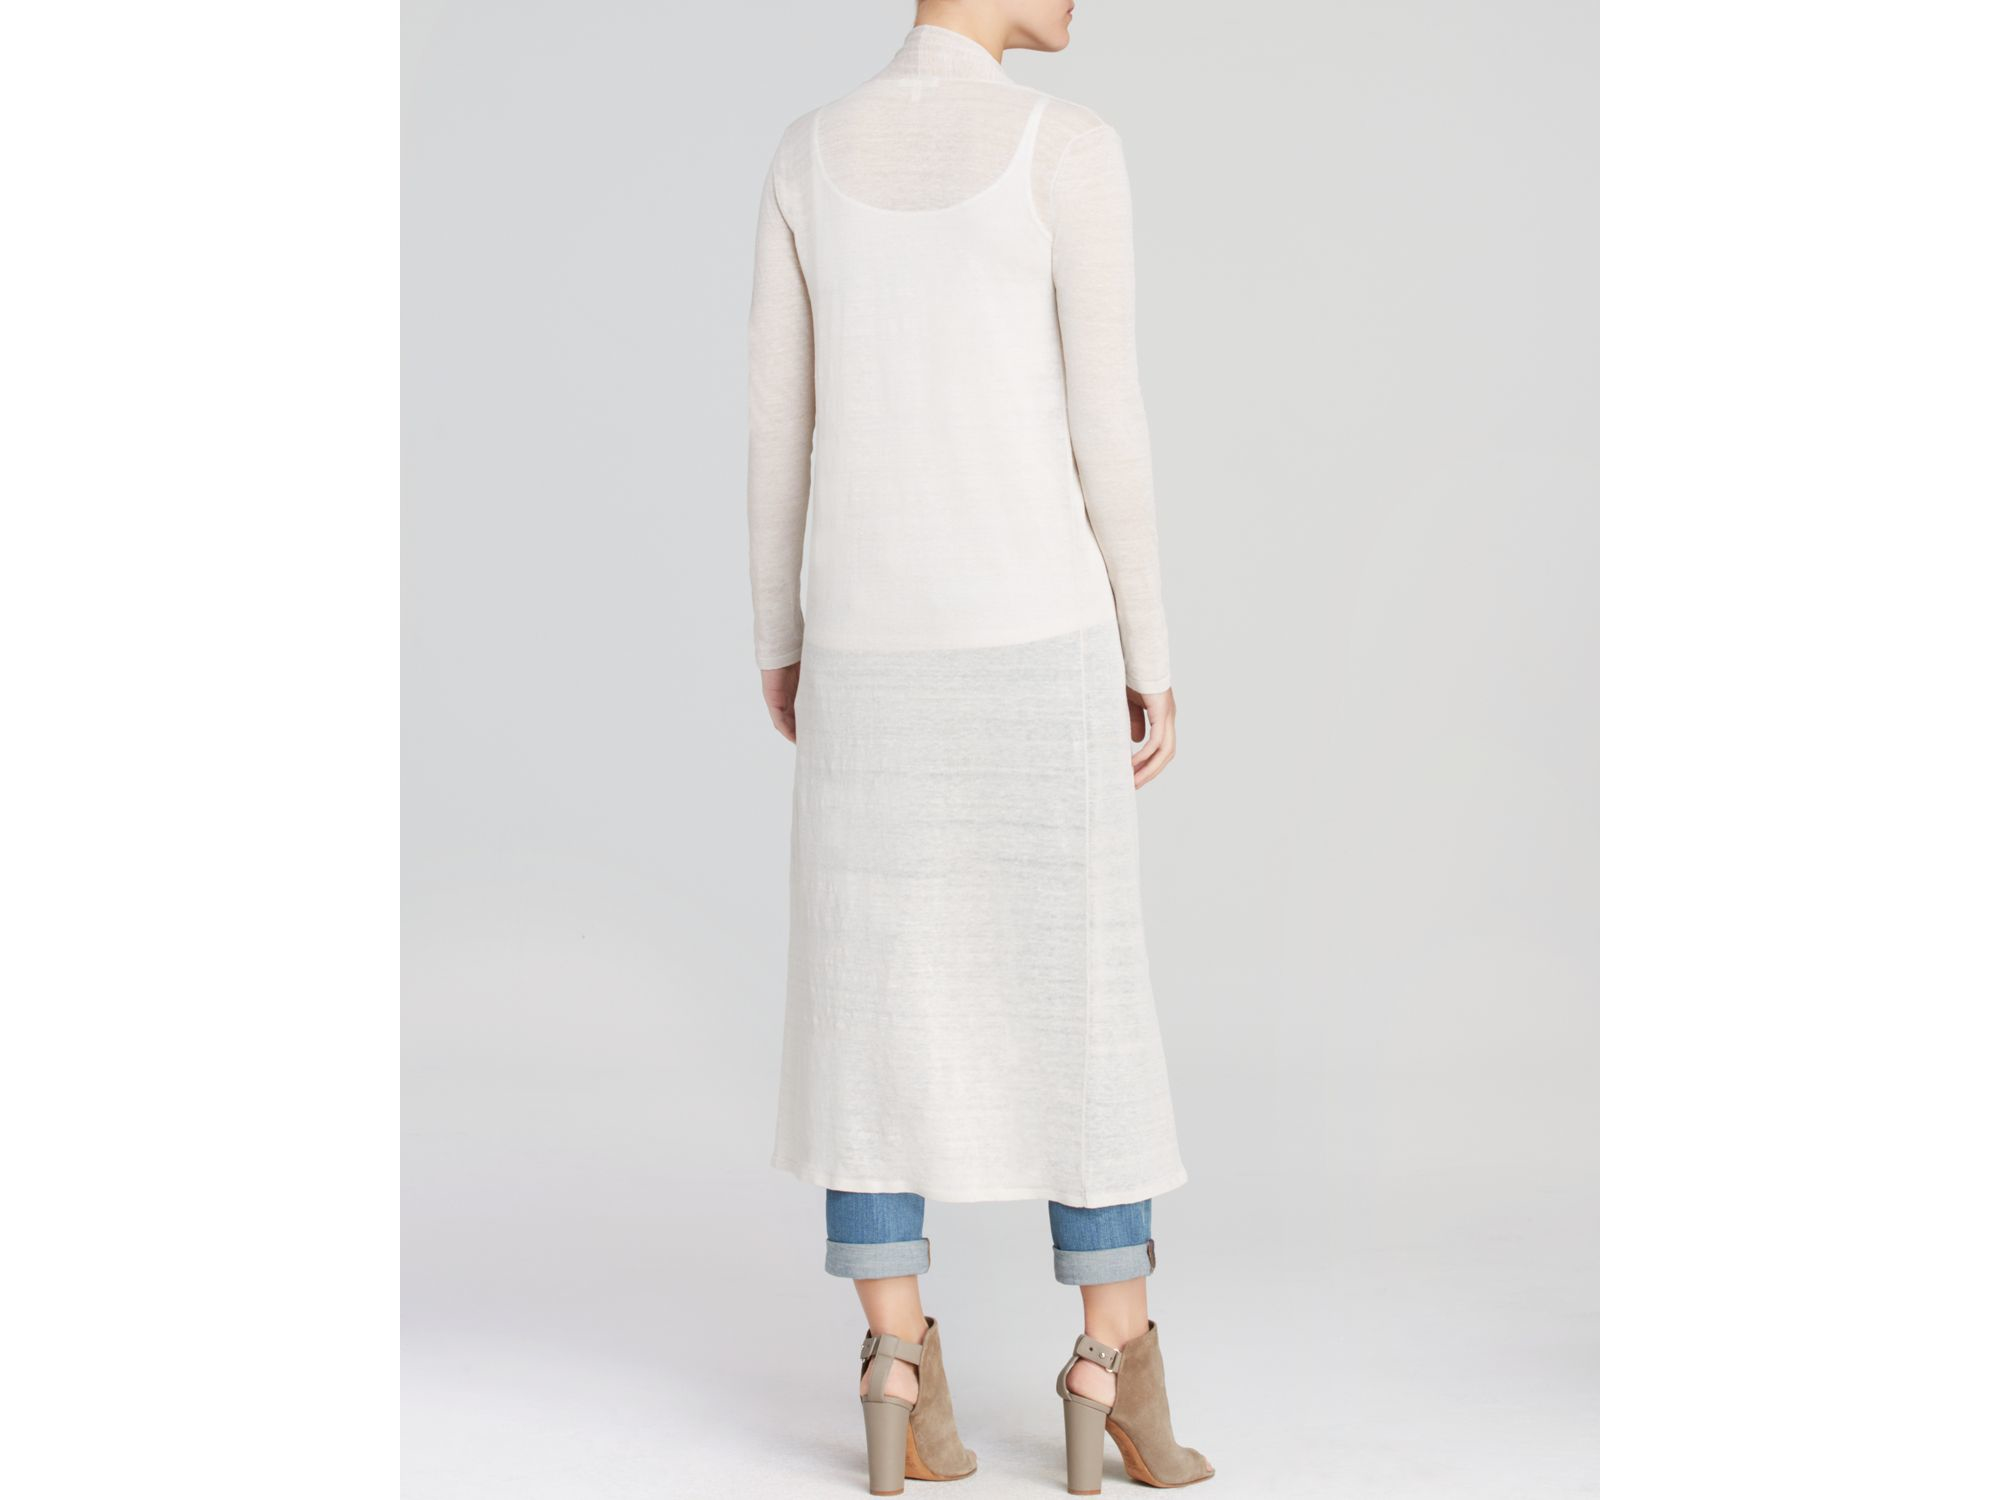 Eileen fisher Maxi Cardigan in White | Lyst